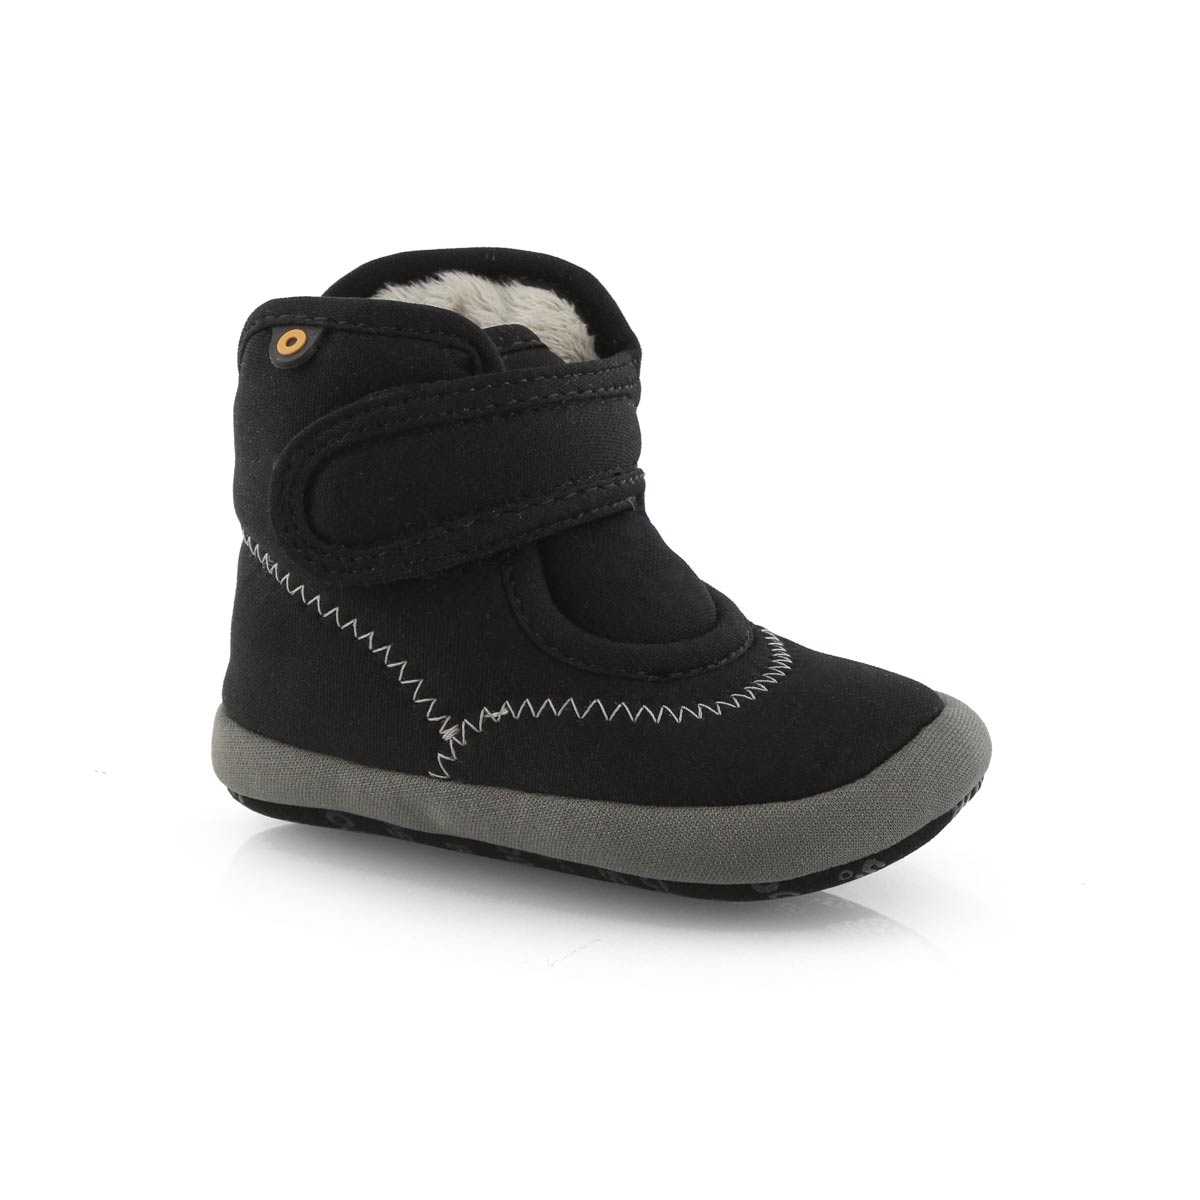 Inf-b Elliot II Solid blk slip on boot